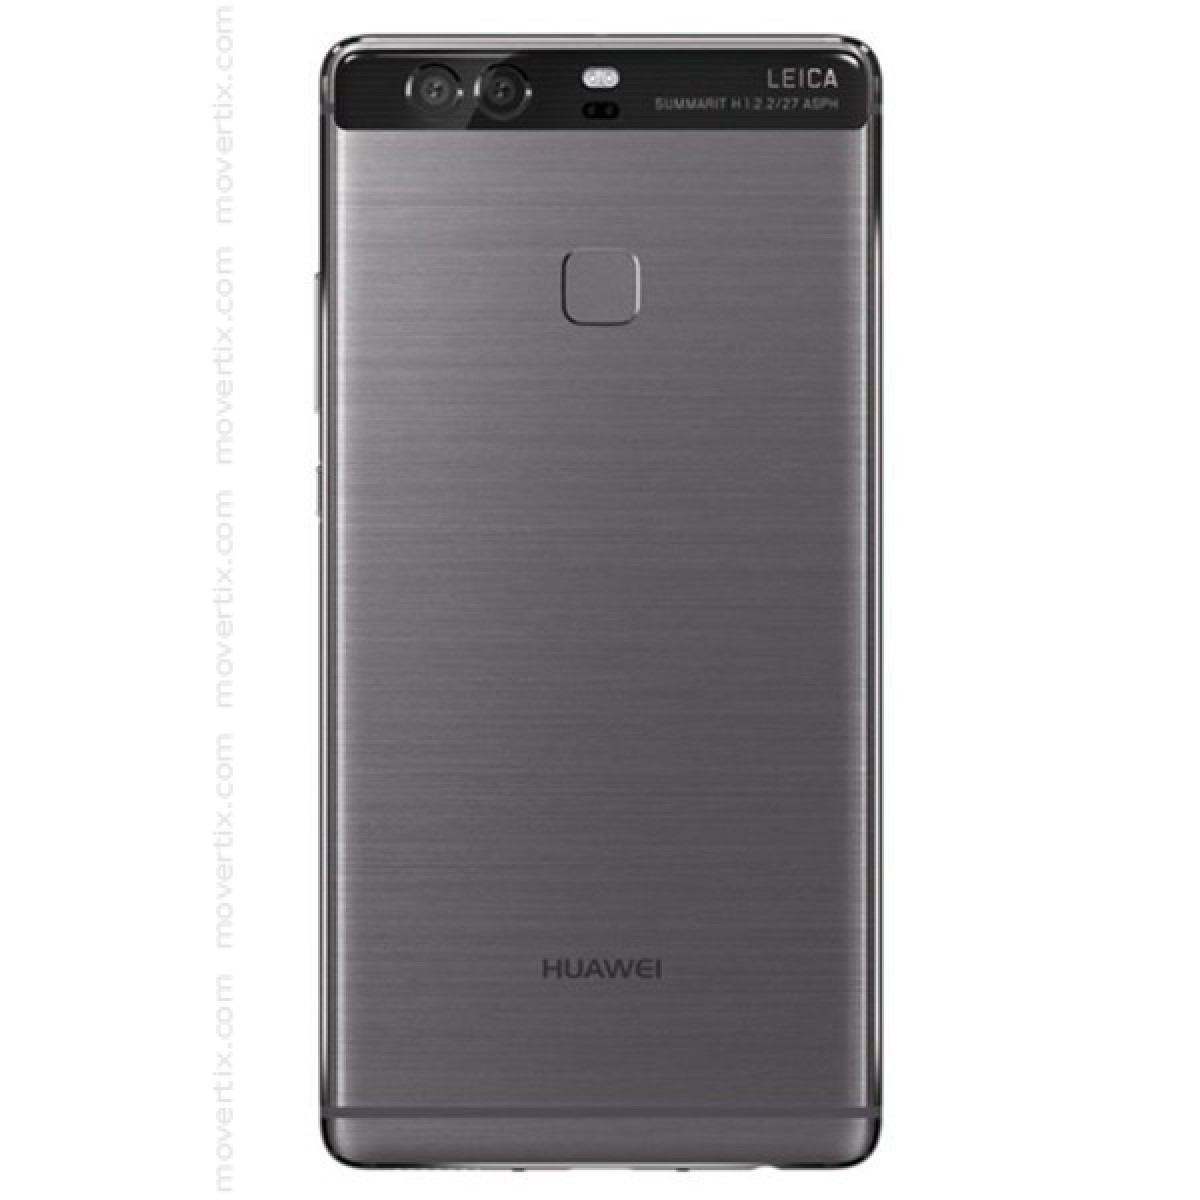 huawei p9 plus grey. the huawei p9 plus in grey color is a smartphone made to impress. with 4gb of ram, 64gb storage and spectacular leica camera. m